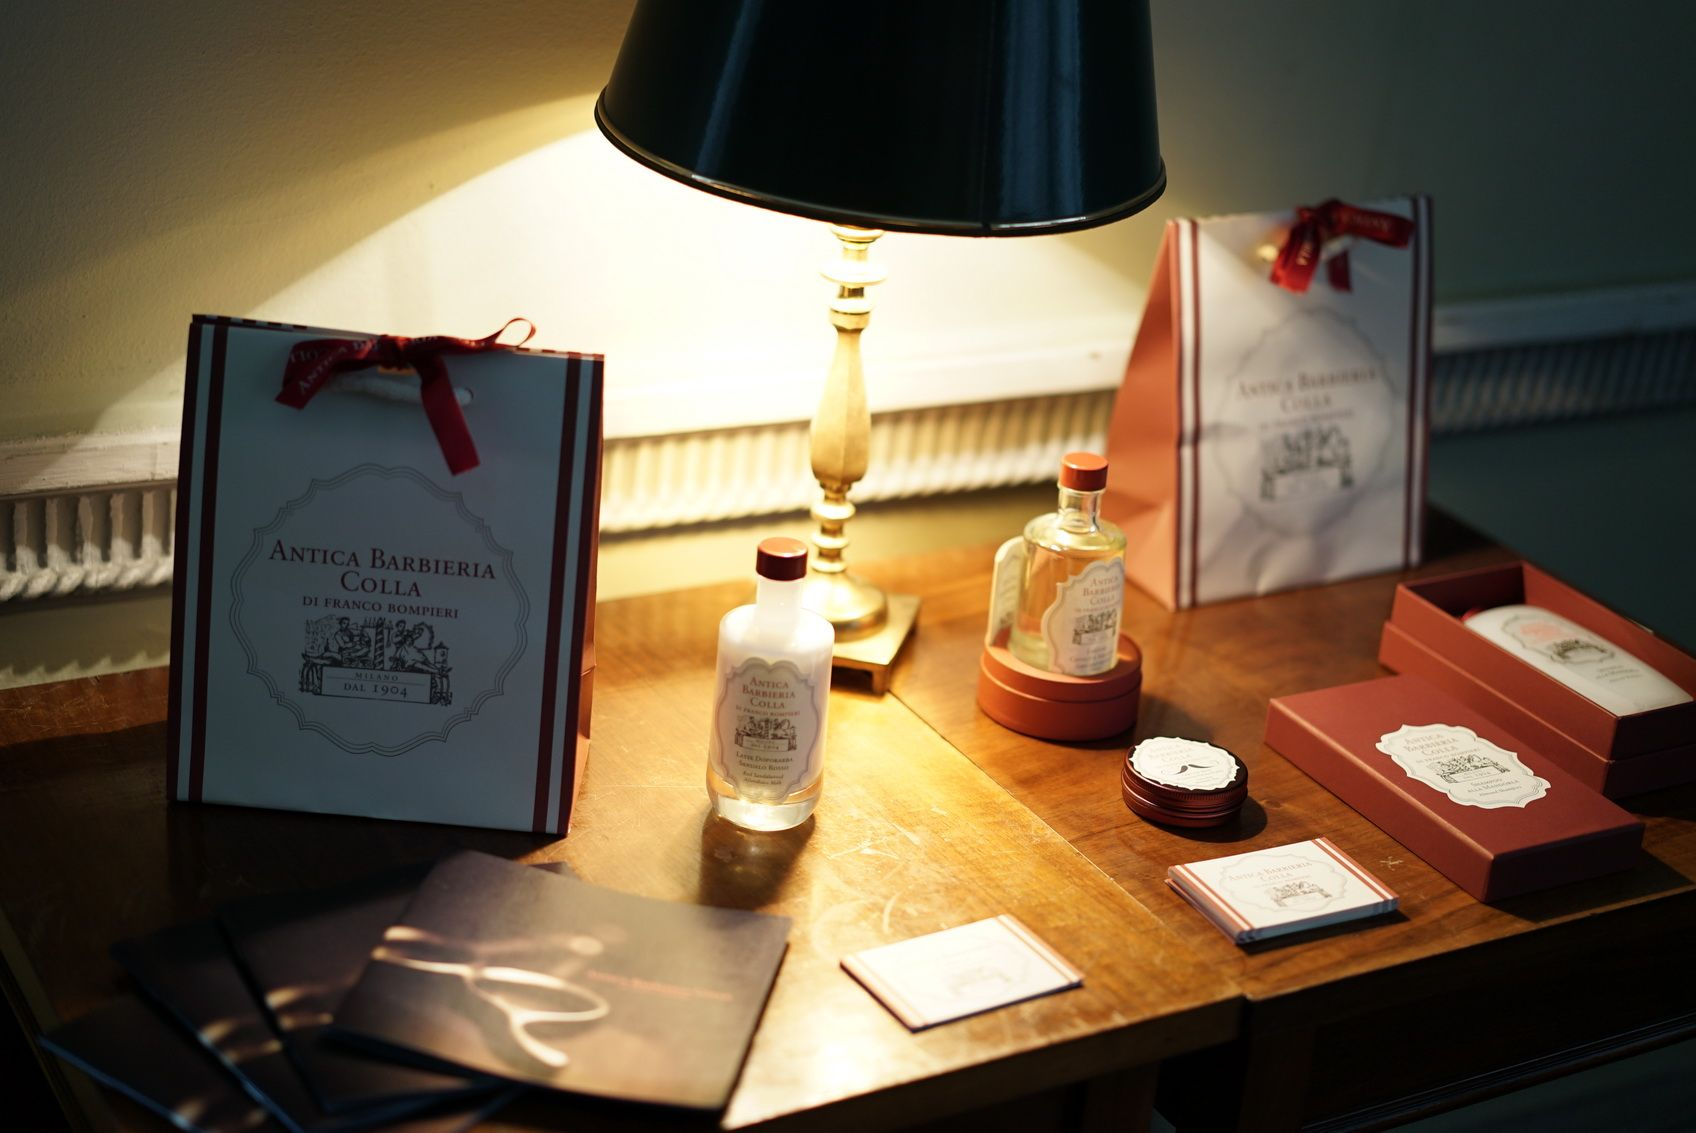 anticabarbieriacollashop.com shaving&grooming line lands in Belgrade for the event of excellences #24hoursofelengance